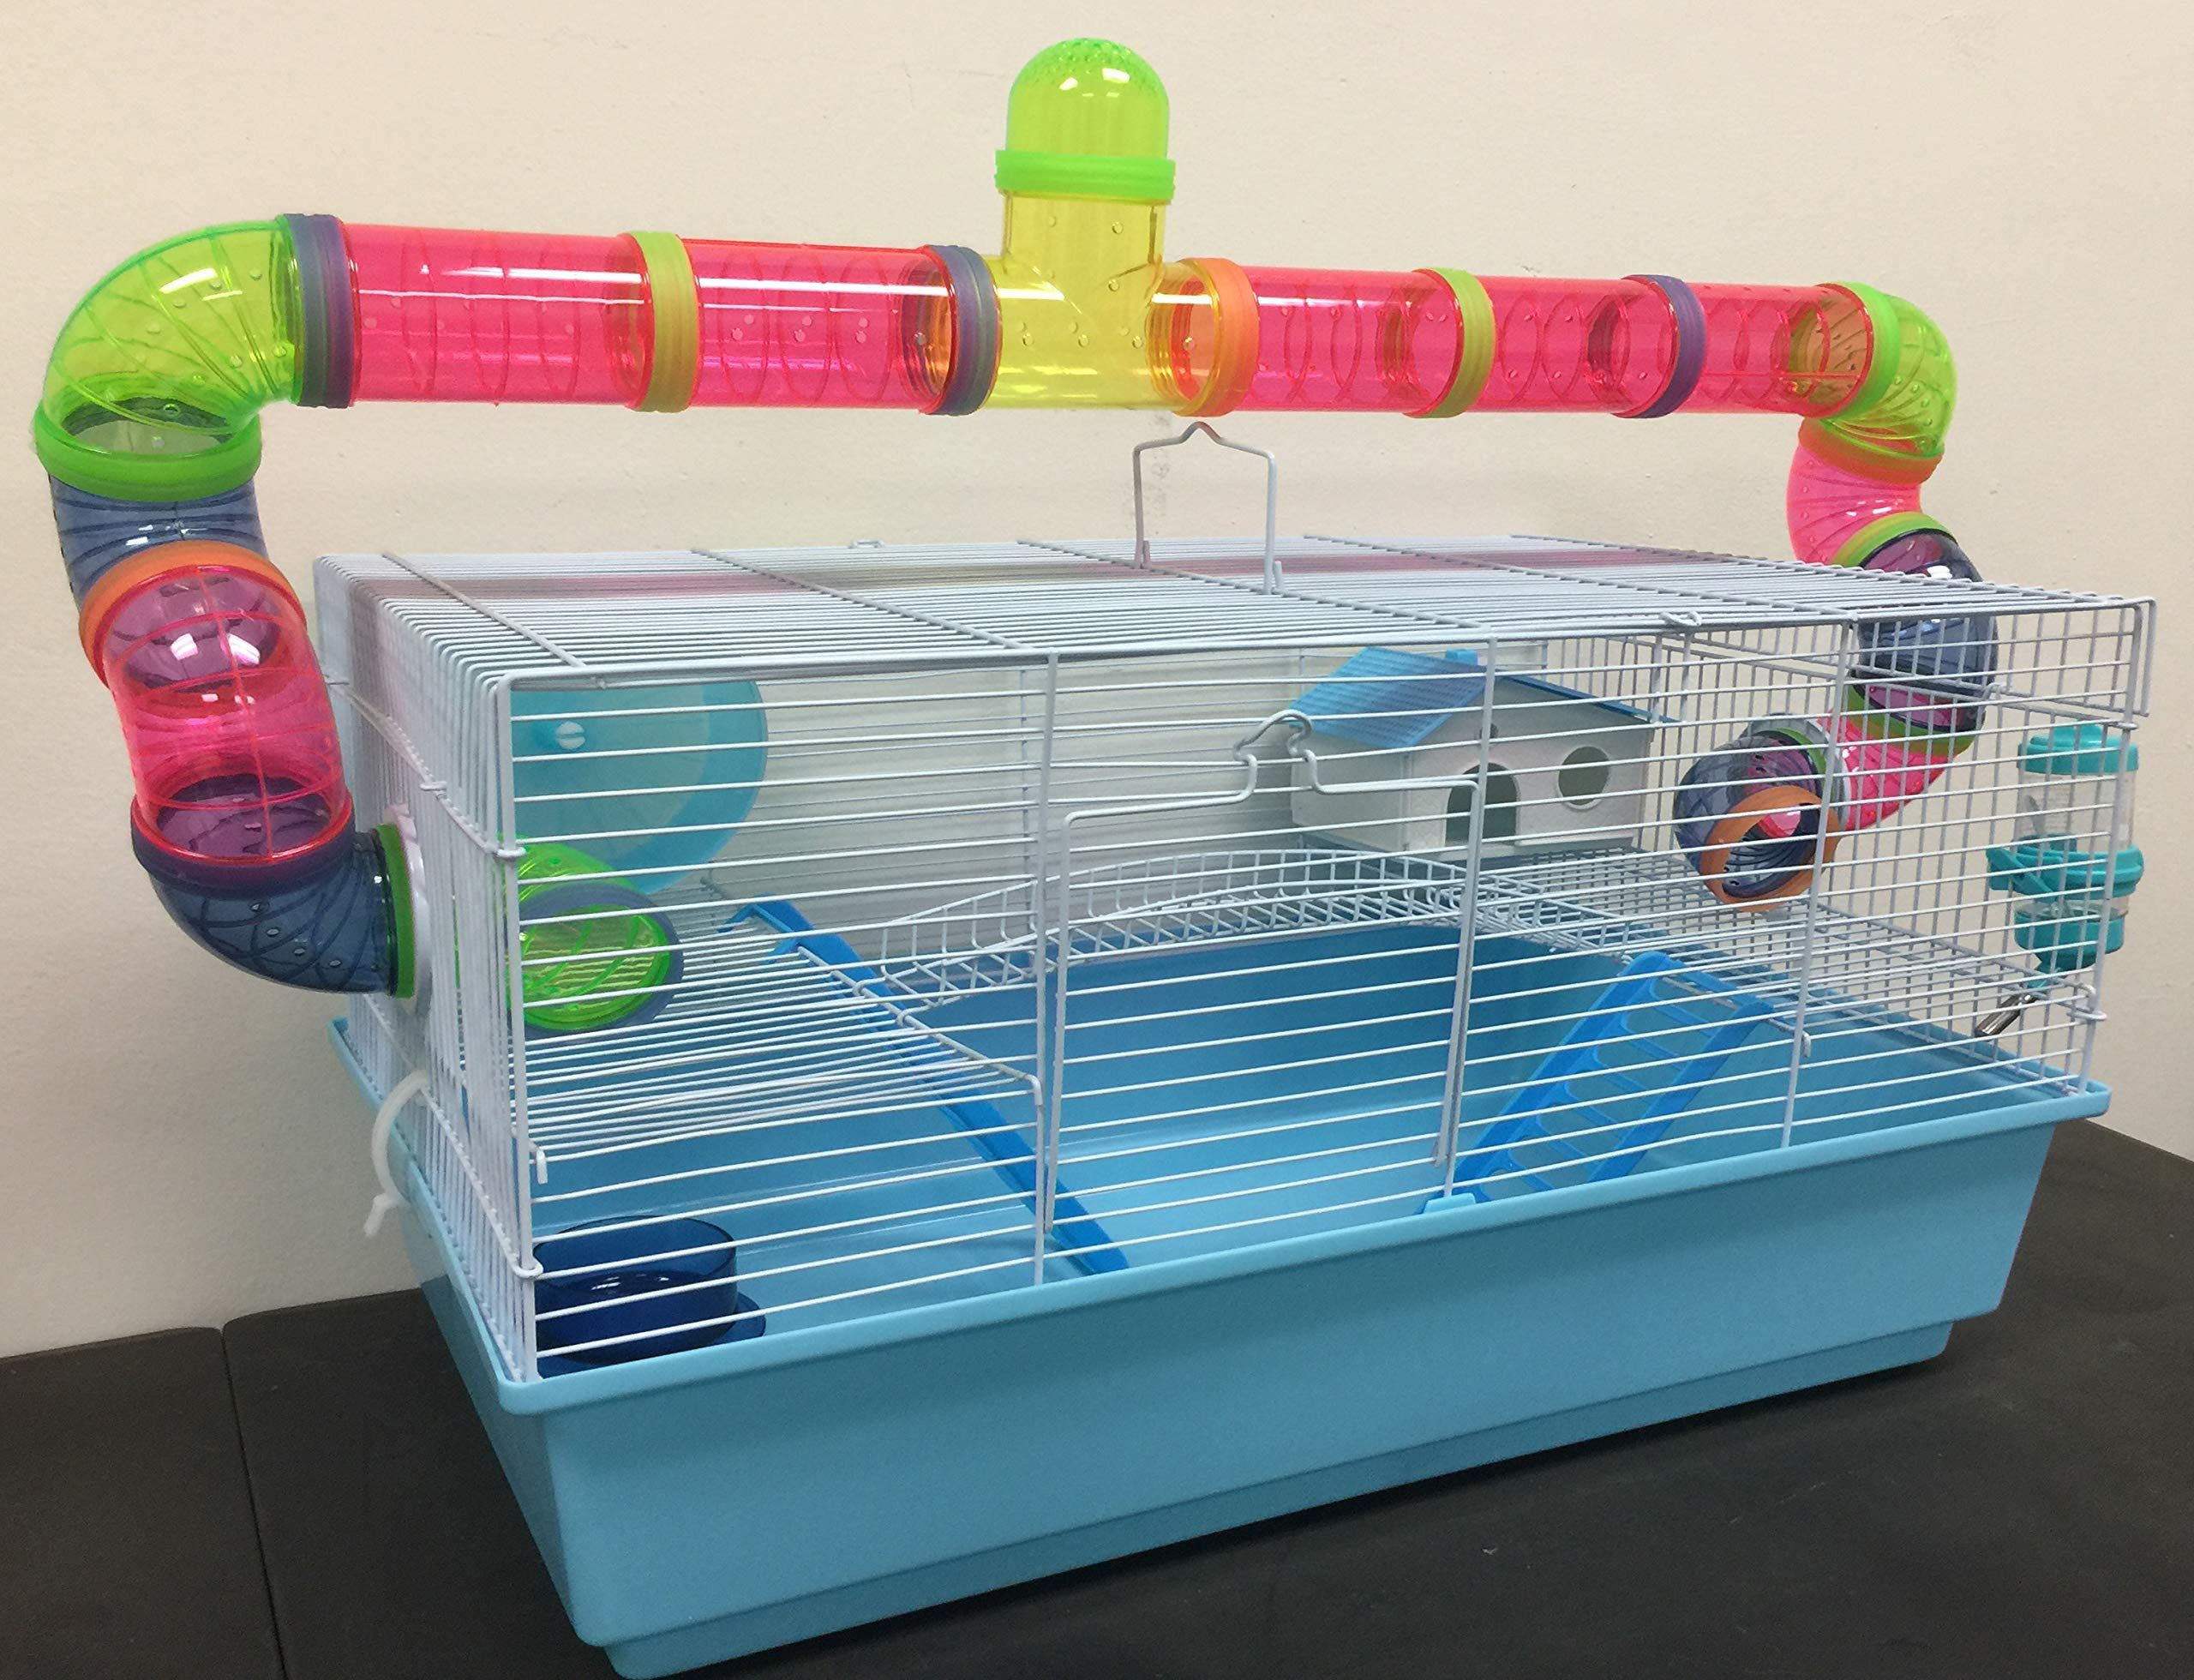 New Large Habitat Hamster Rodent Gerbil Mouse Mice Cage Long